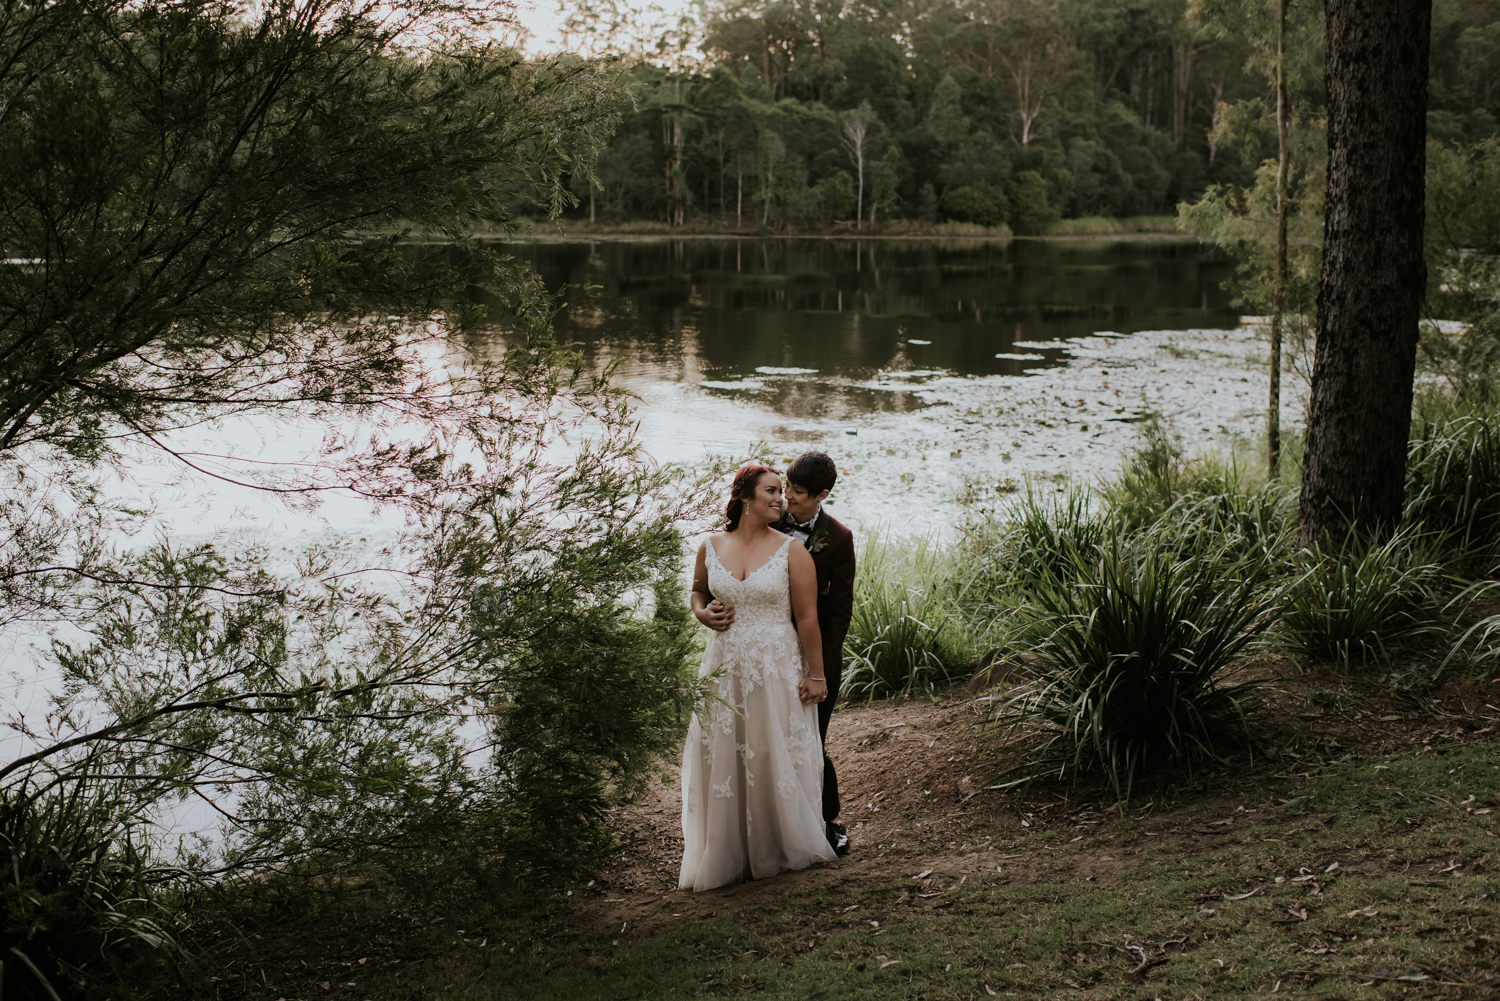 Brisbane Wedding Photographer | Walkabout Creek Photography-89.jpg